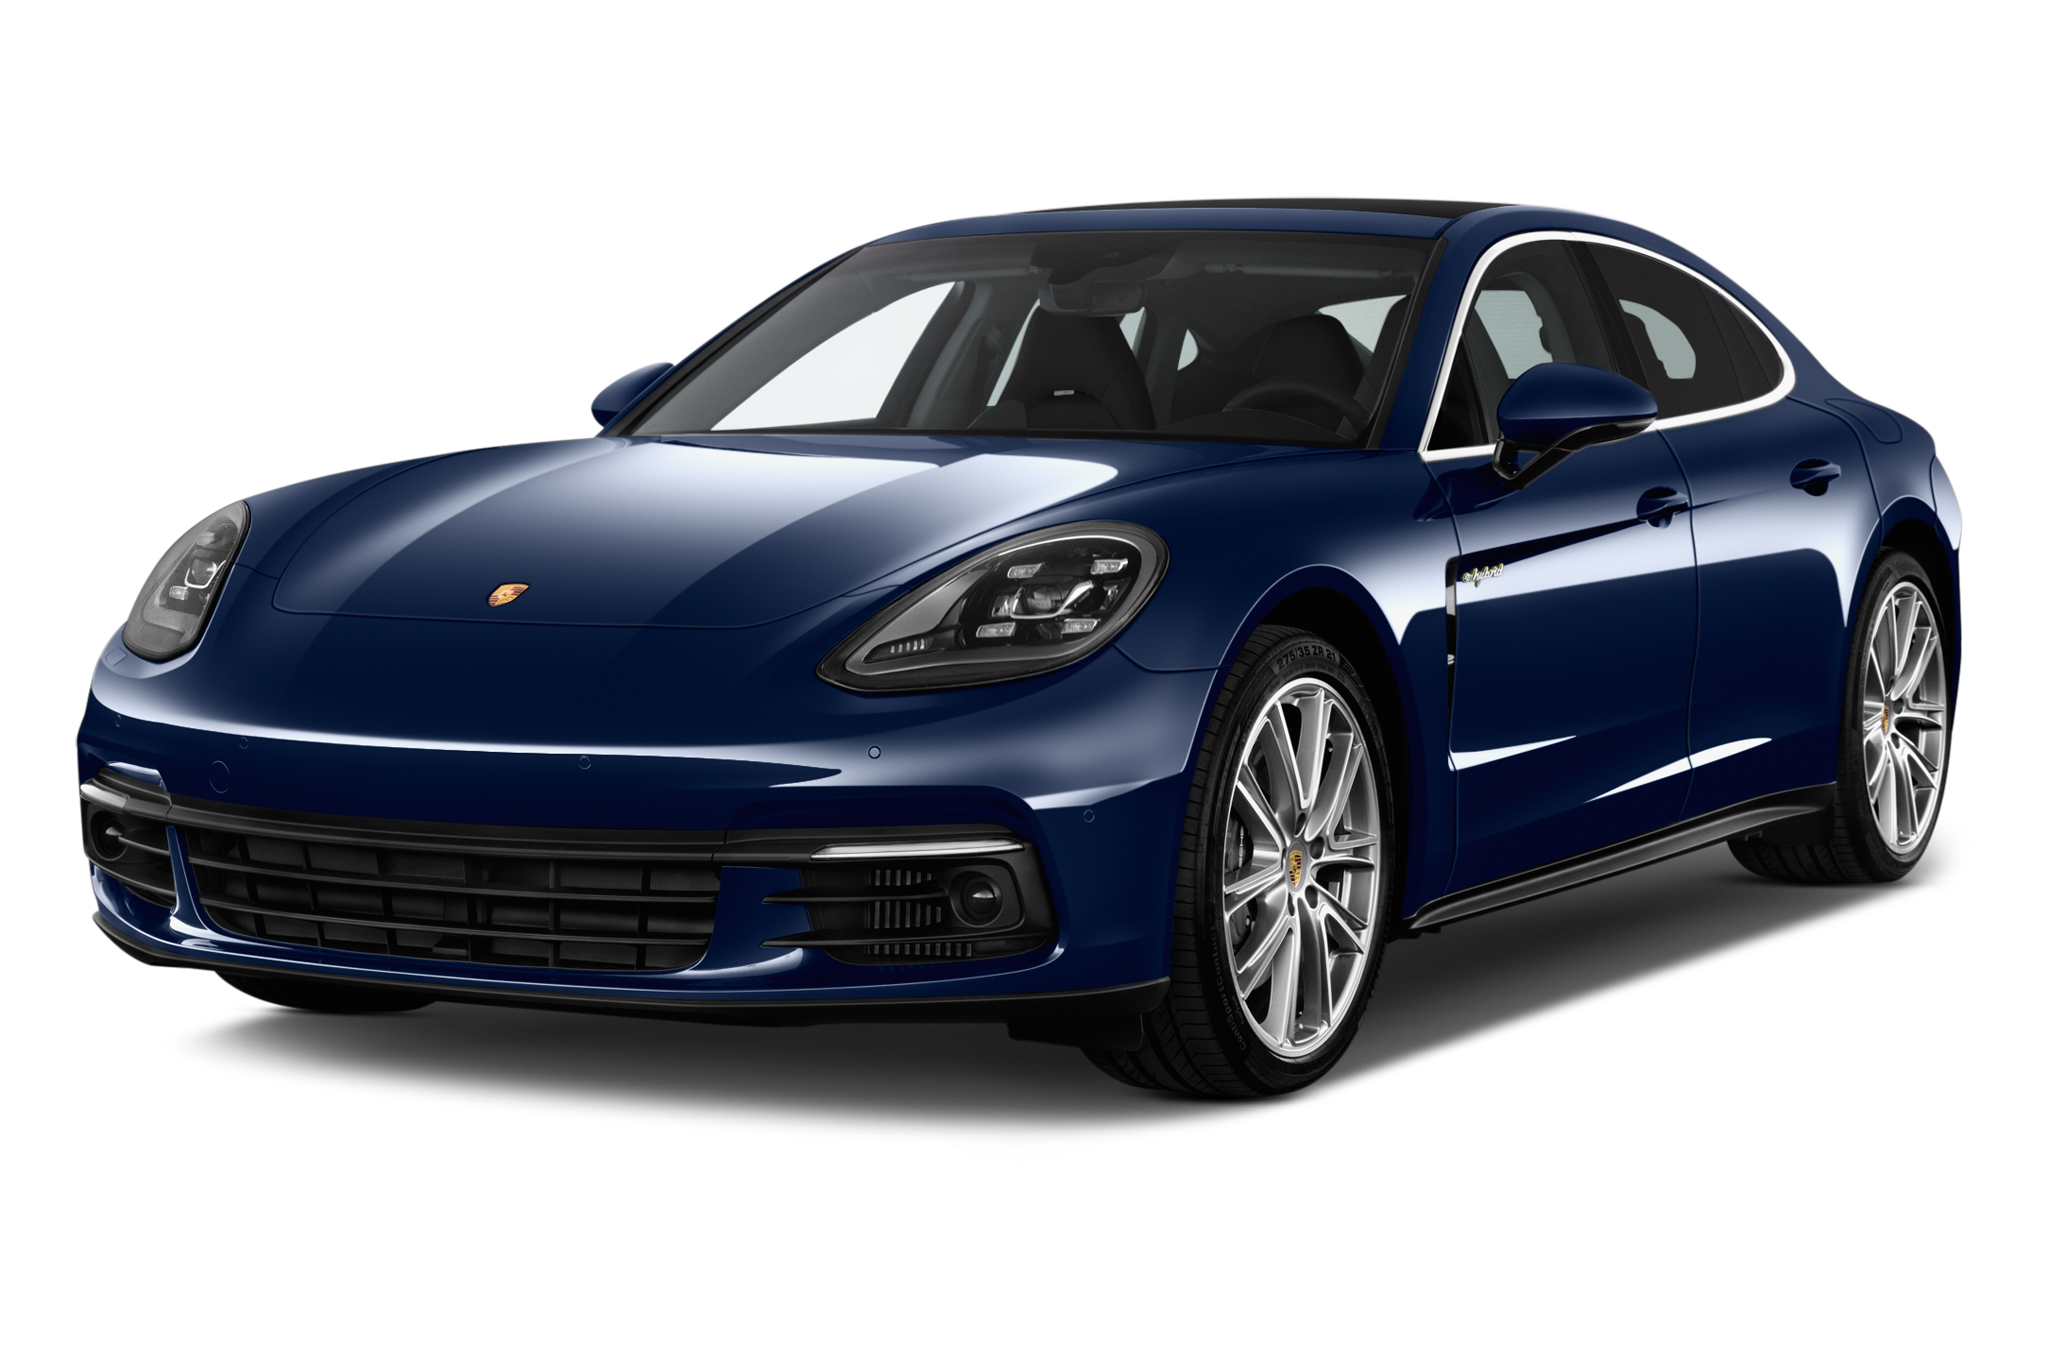 2019 Porsche Panamera Specs And Features